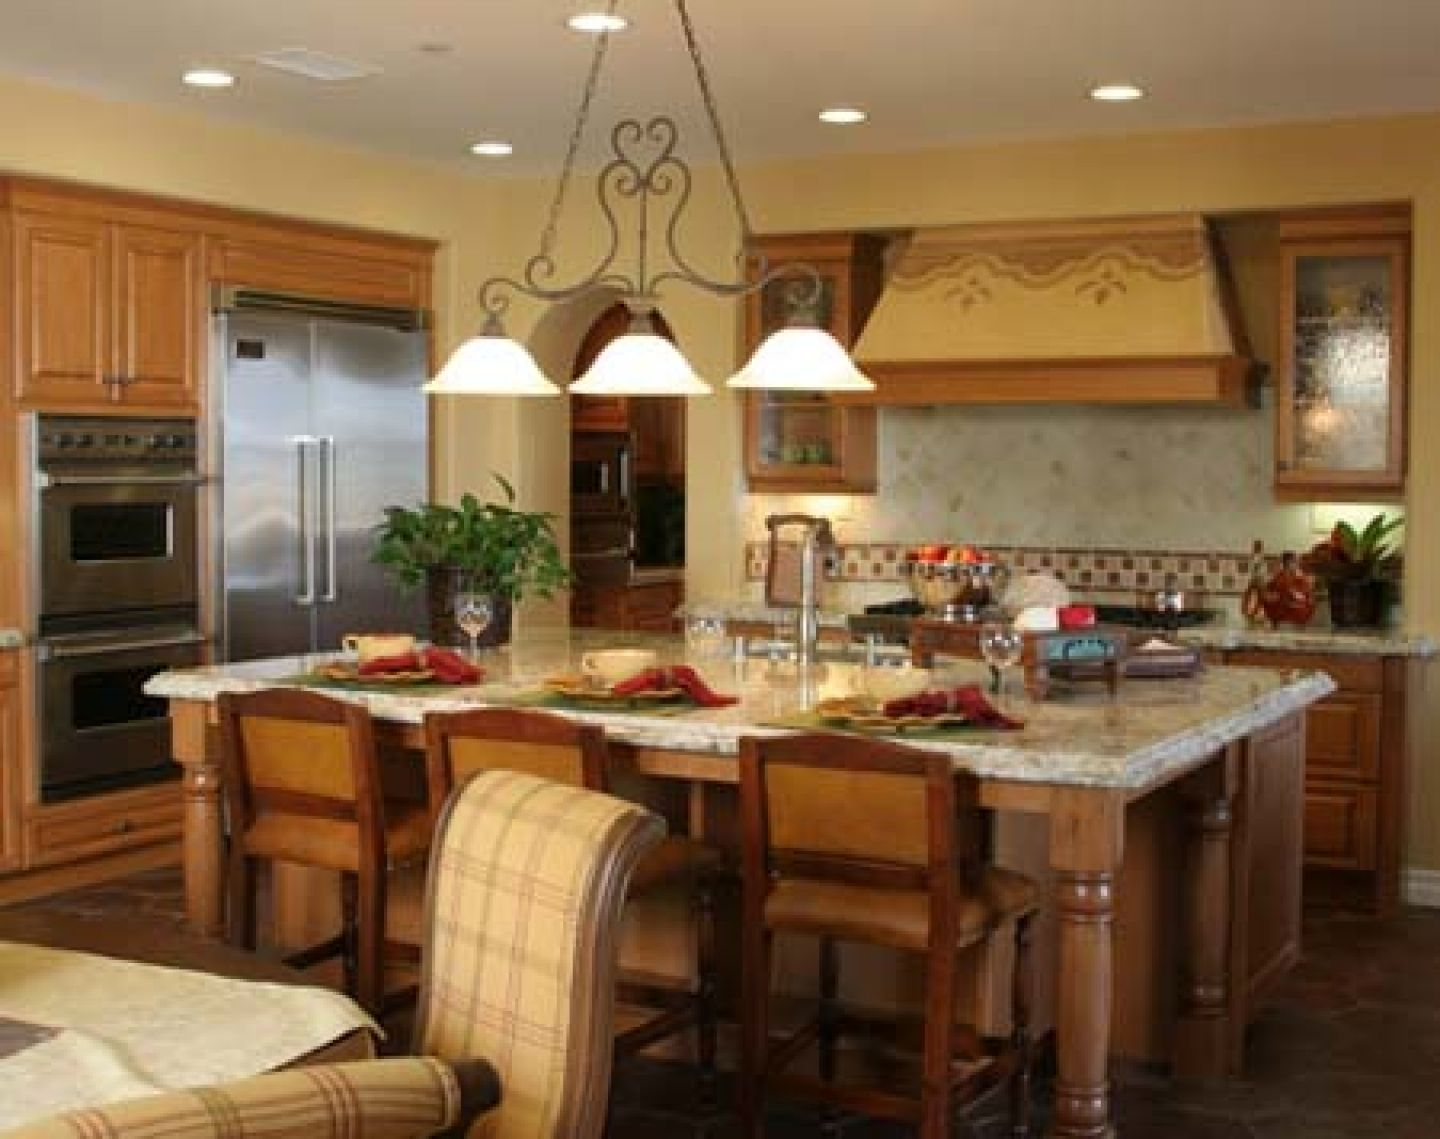 Country Kitchen Designs Photo Gallery Small Country Kitchen Designs Country Kitchen Designs Country